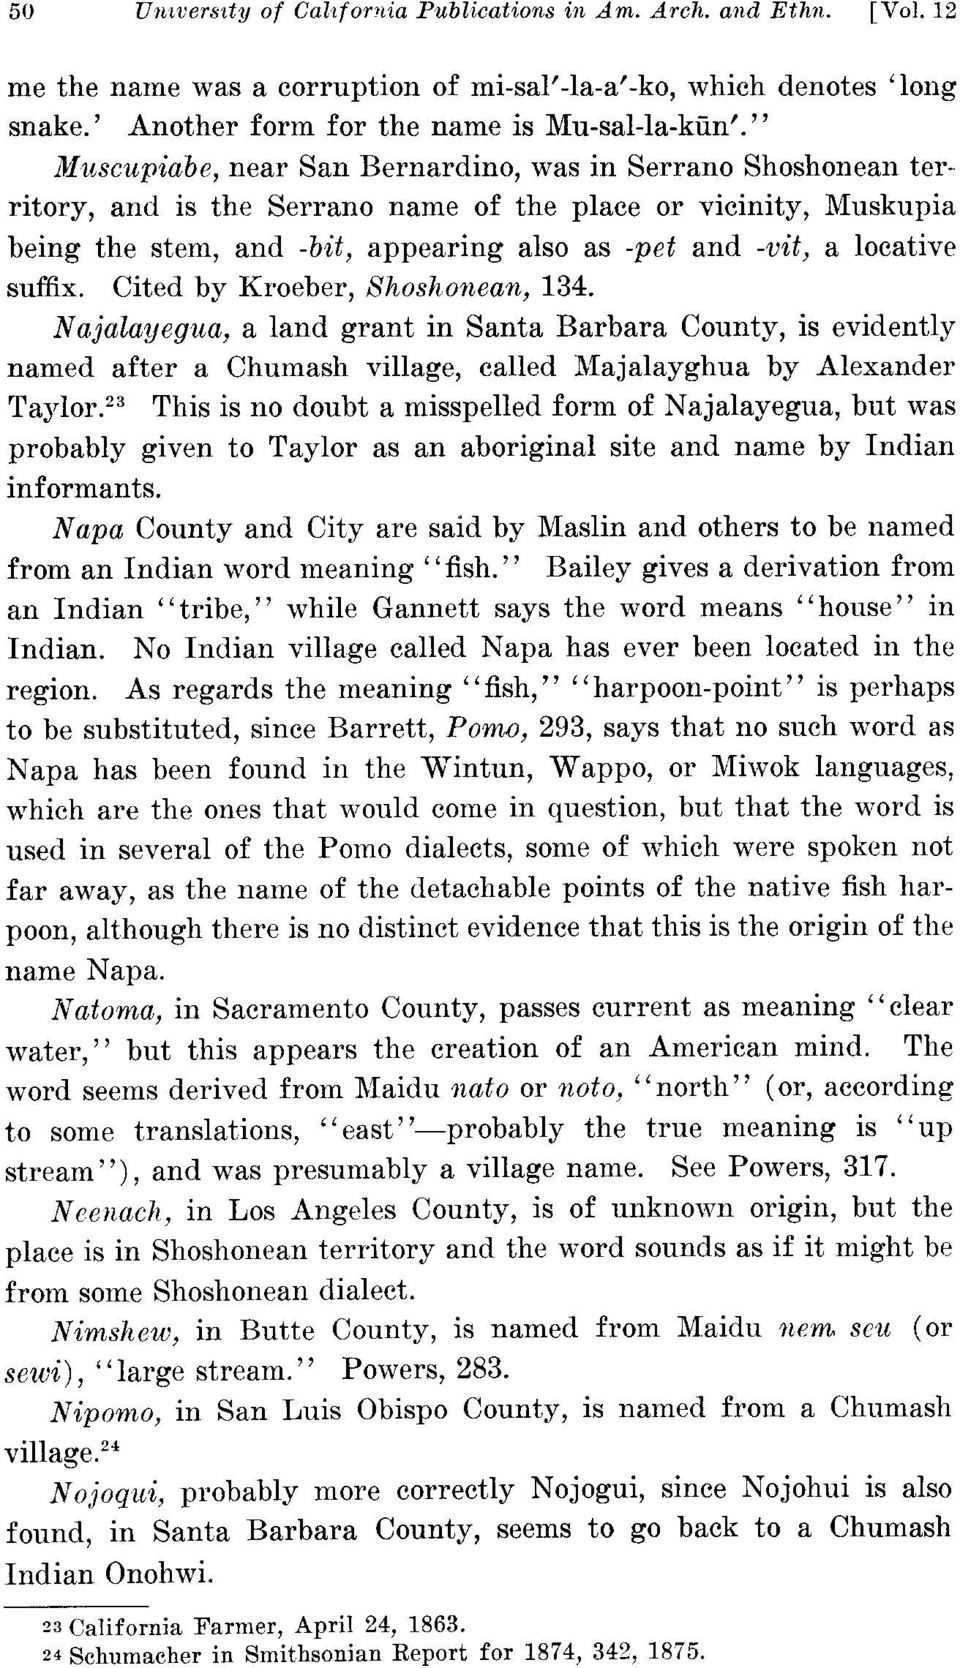 locative suffix. Cited by Kroeber, Shoshonean, 134. Najalayegua, a land grant in Santa Barbara County, is evidently named after a Chumash village, called Majalayghua by Alexander Taylor.